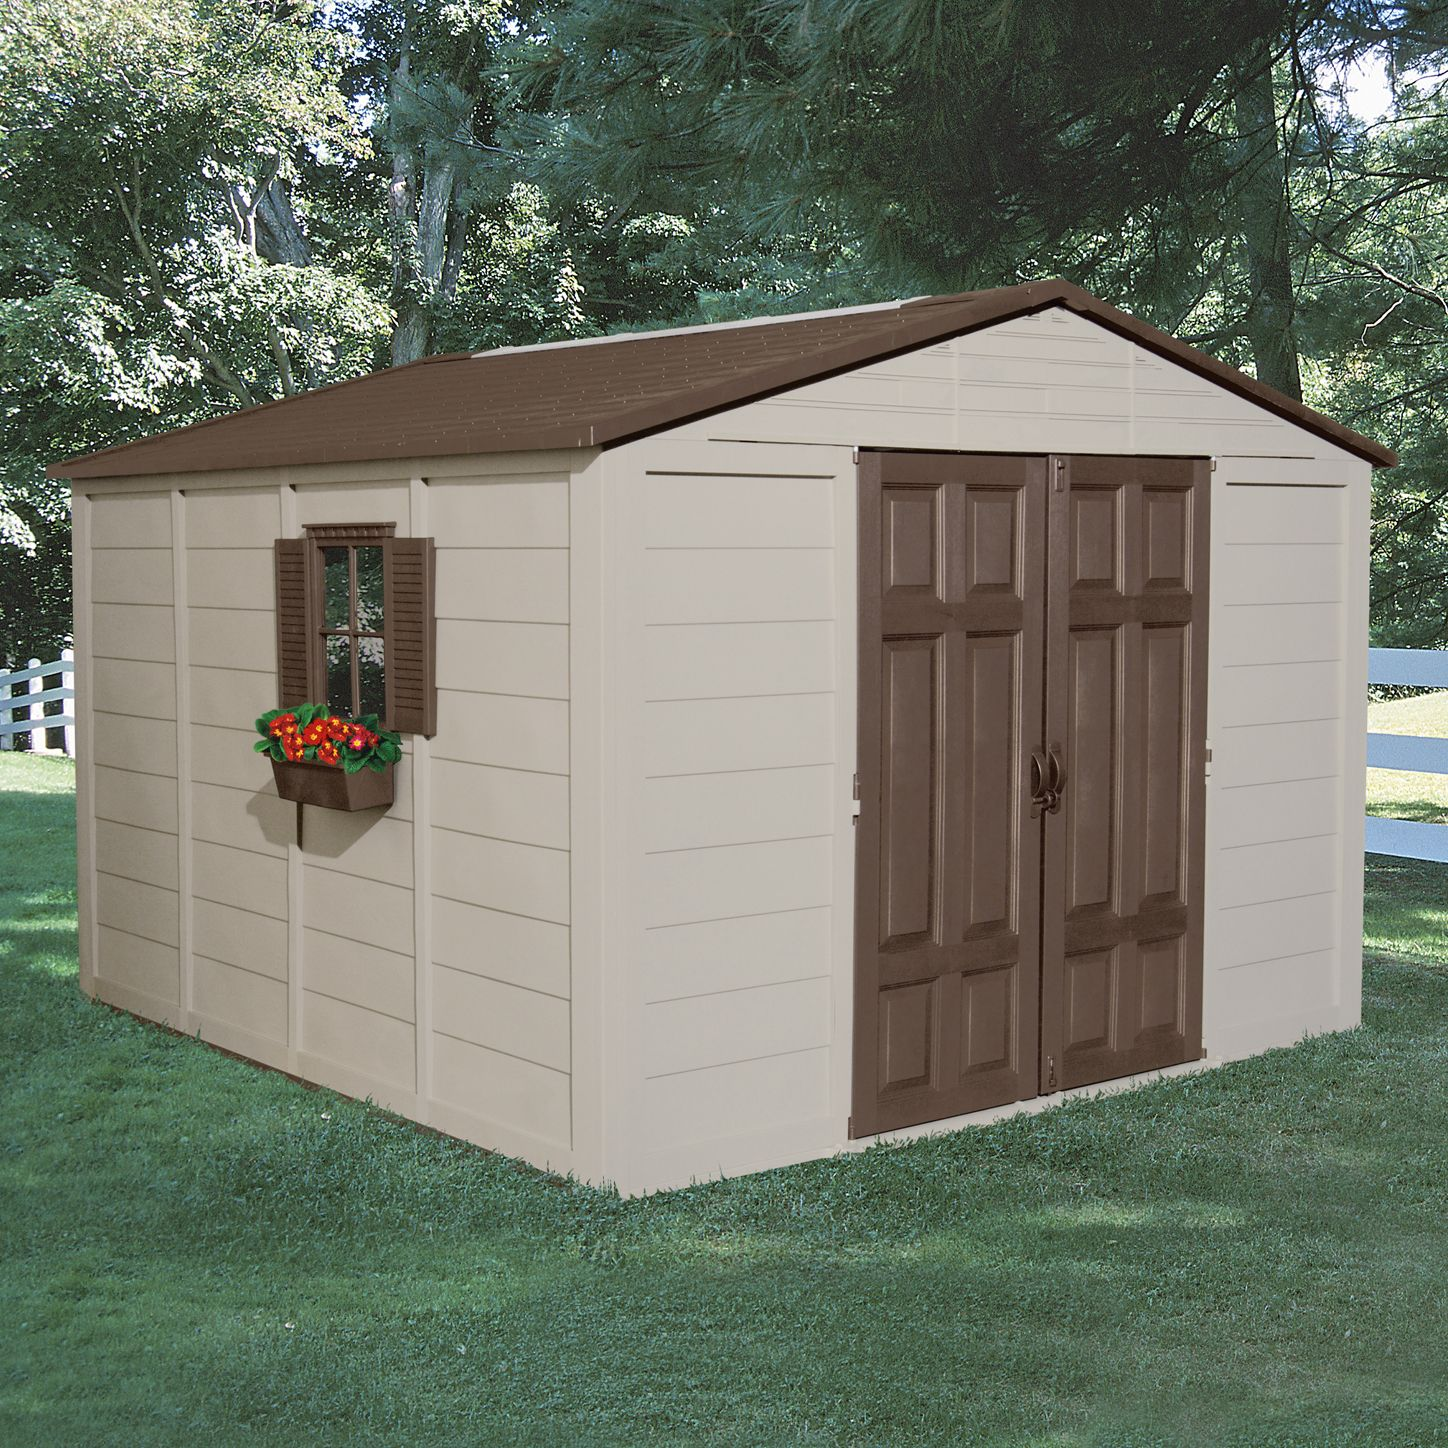 Storage Building (10 ft. x 10 ft.)